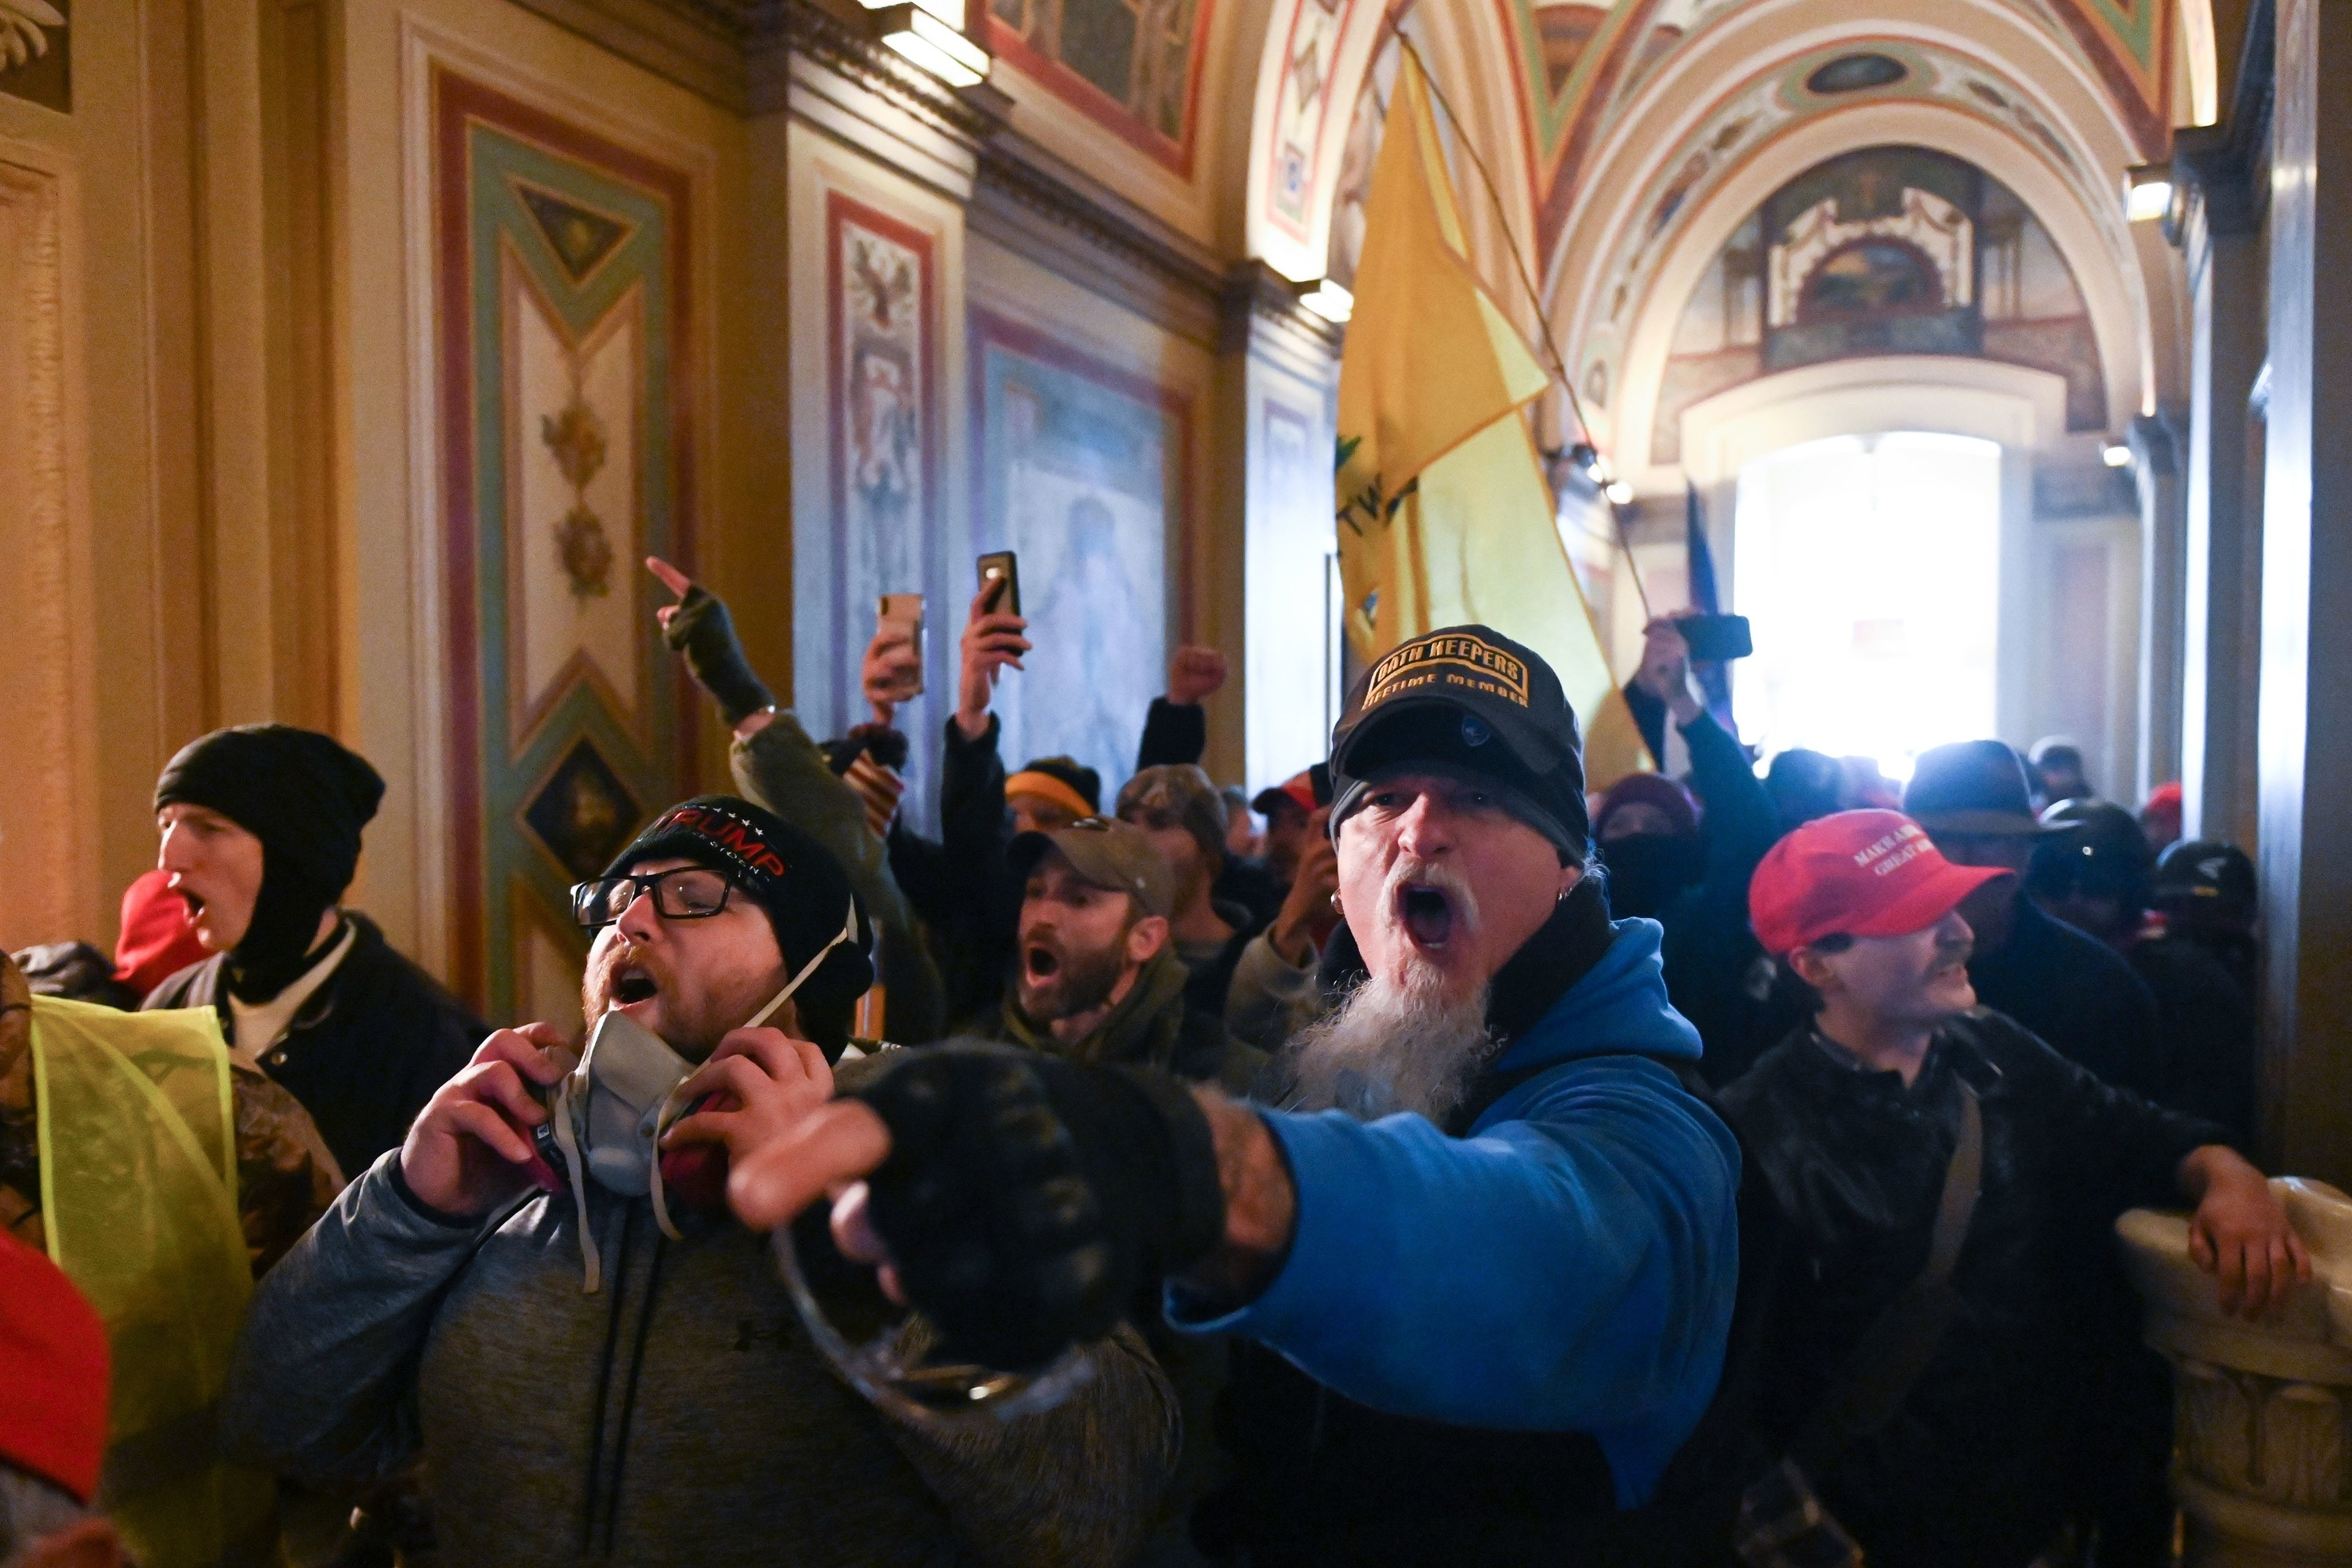 Supporters, many without masks, of US President Donald Trump yelling as they riot inside the US Capitol